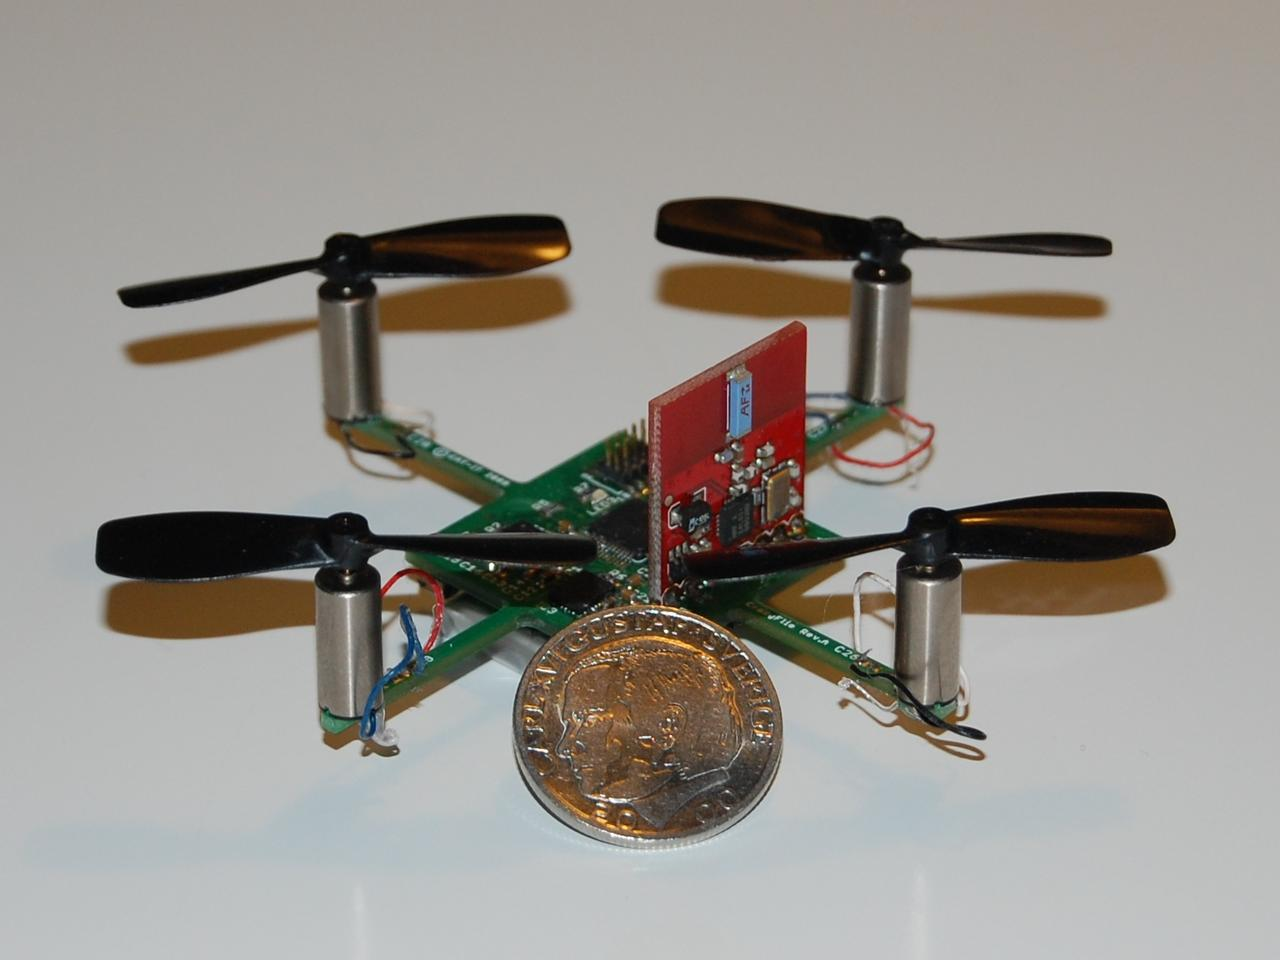 The first prototype Crazyflie quadcopters featured a main board with a 2.4 GHz radio sticking up